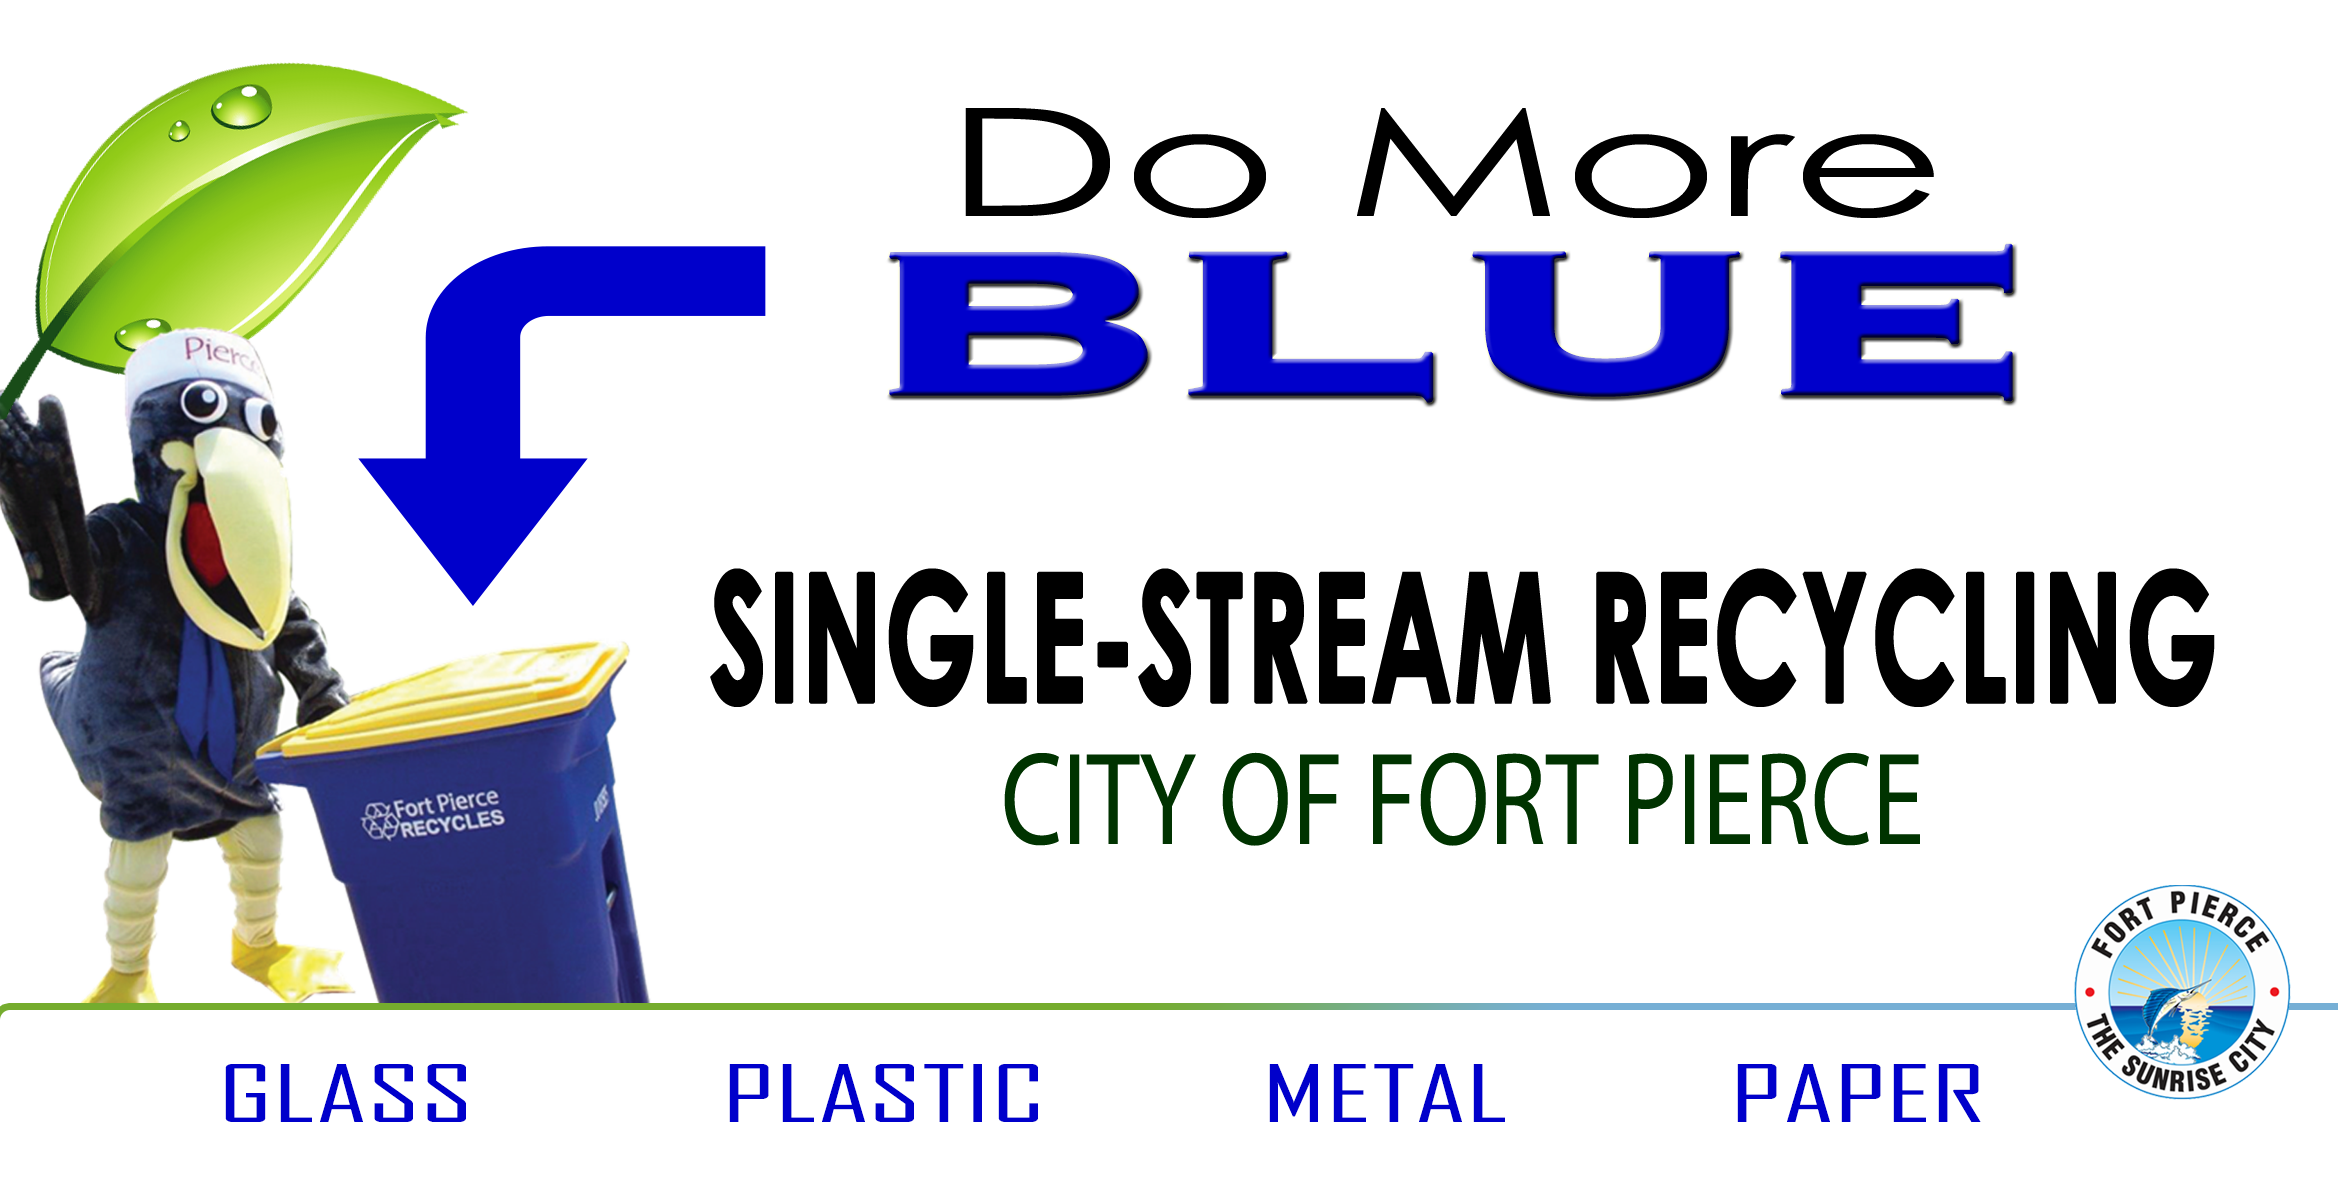 COFP RECYCLING AD - Do More Blue - No BG.png